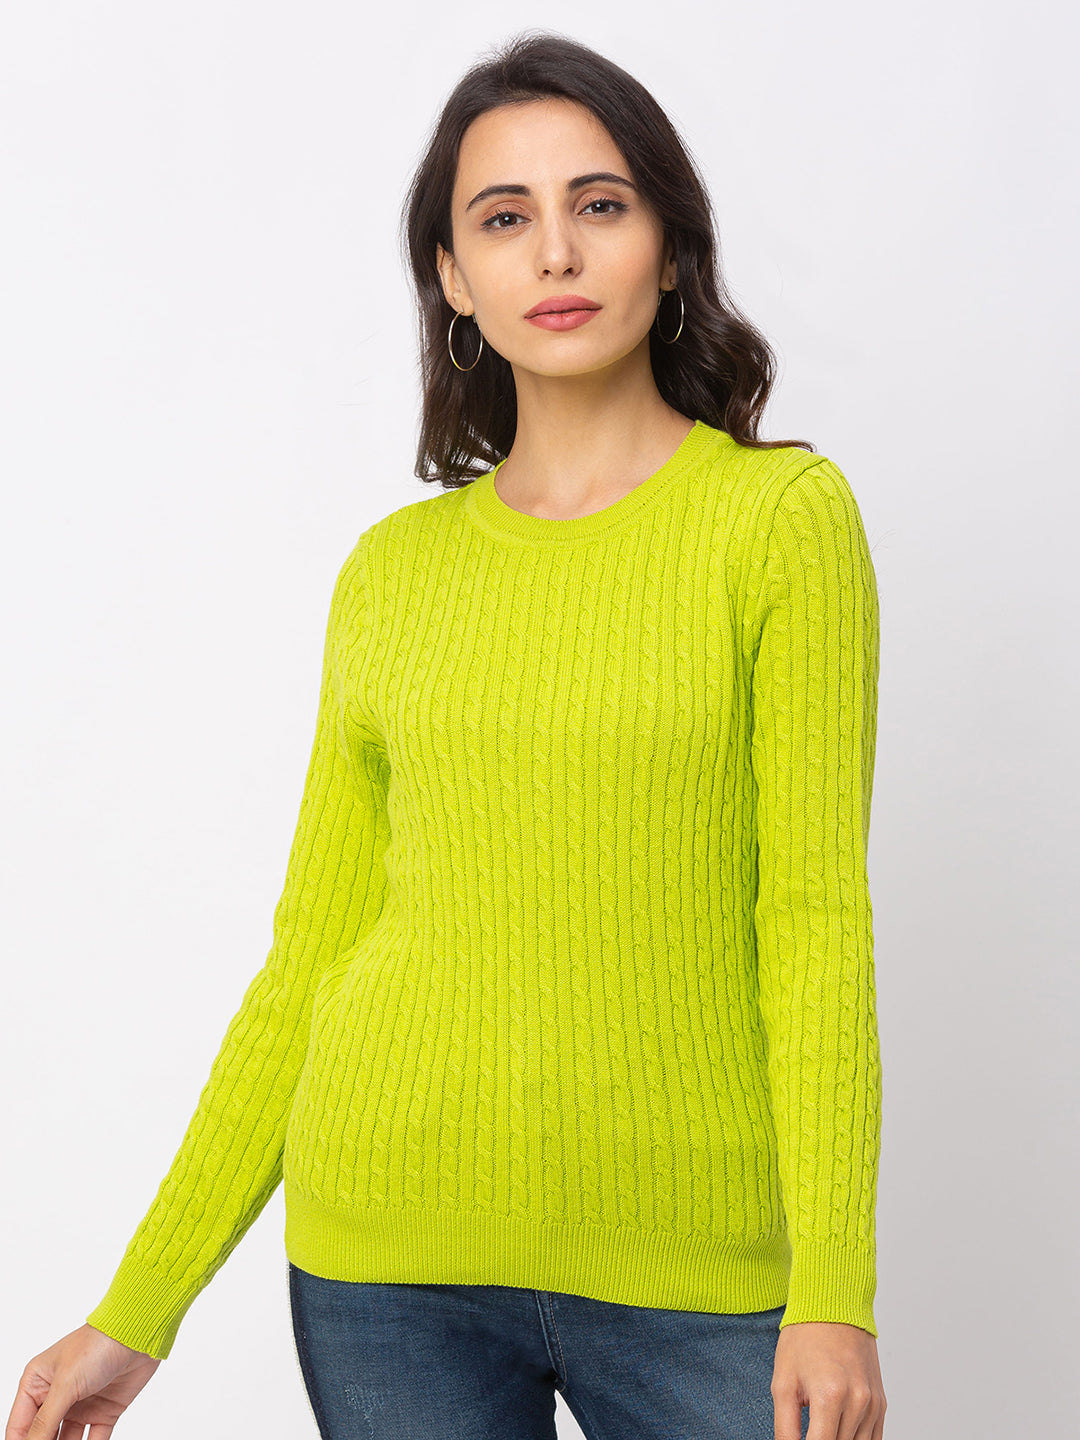 Globus Lime Textured Sweater-1